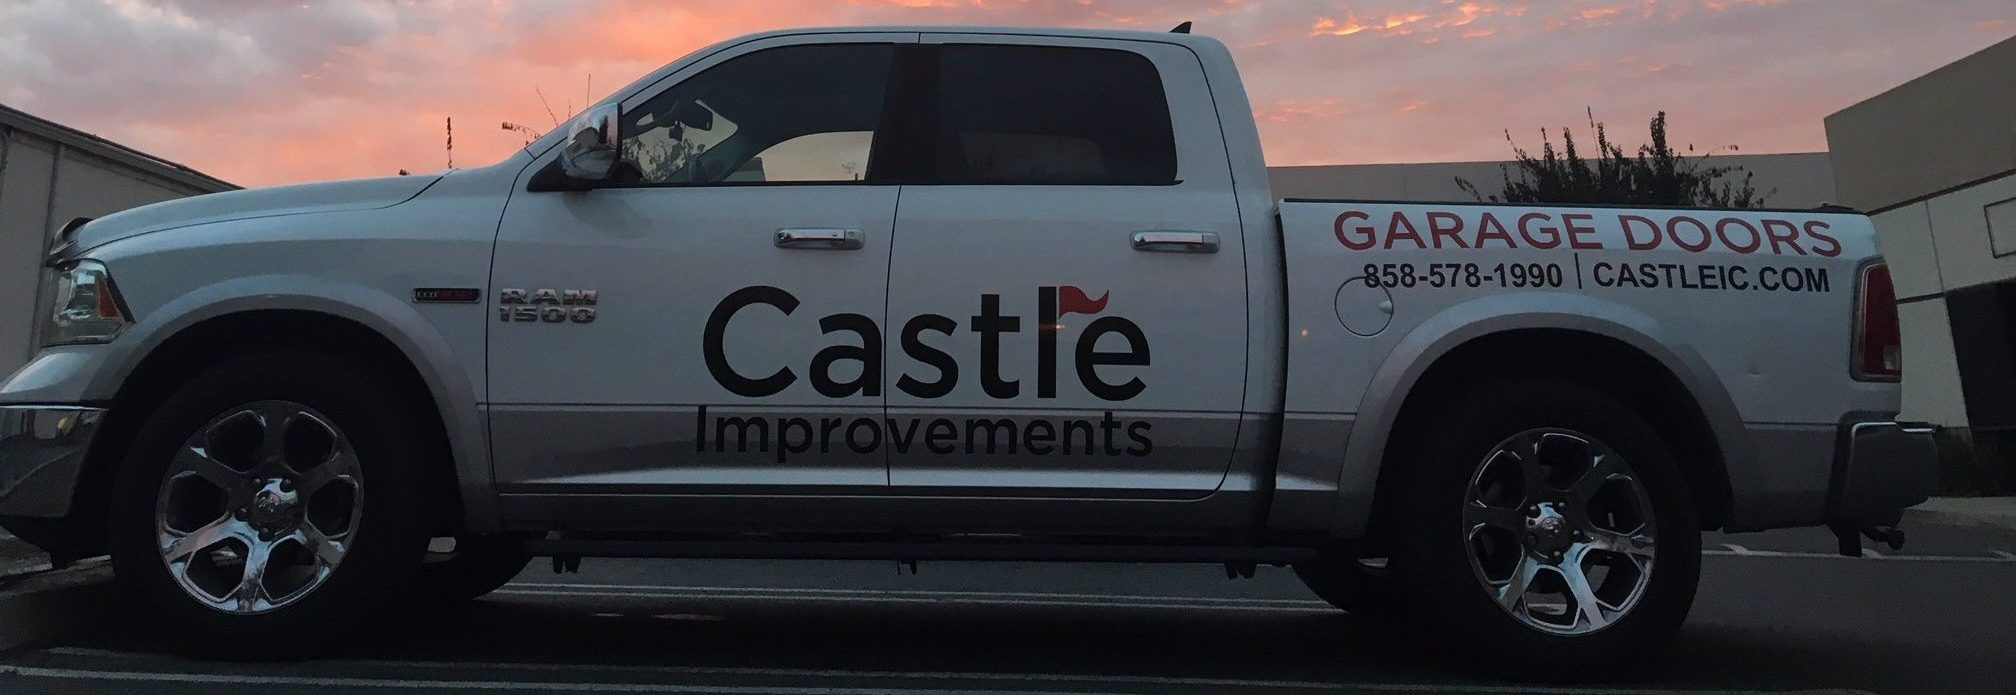 Castle Garage Doors, Honesty is Integrity.